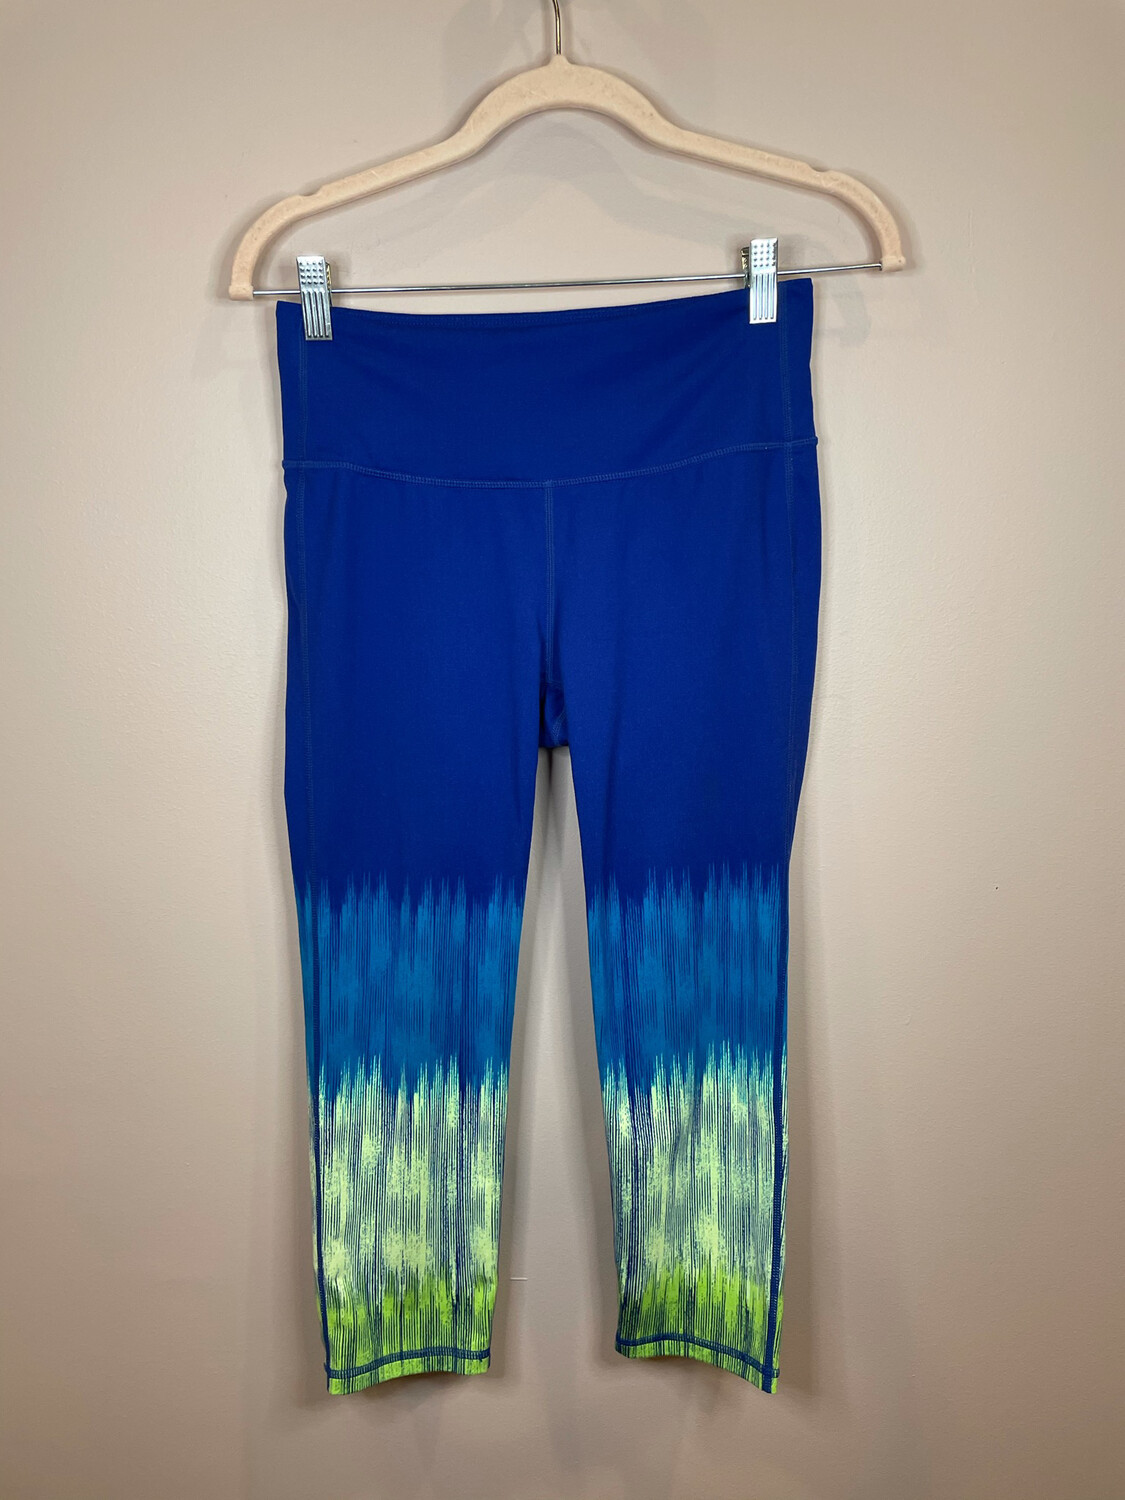 Athleta Blue Athletic Pants with Color Fade - S